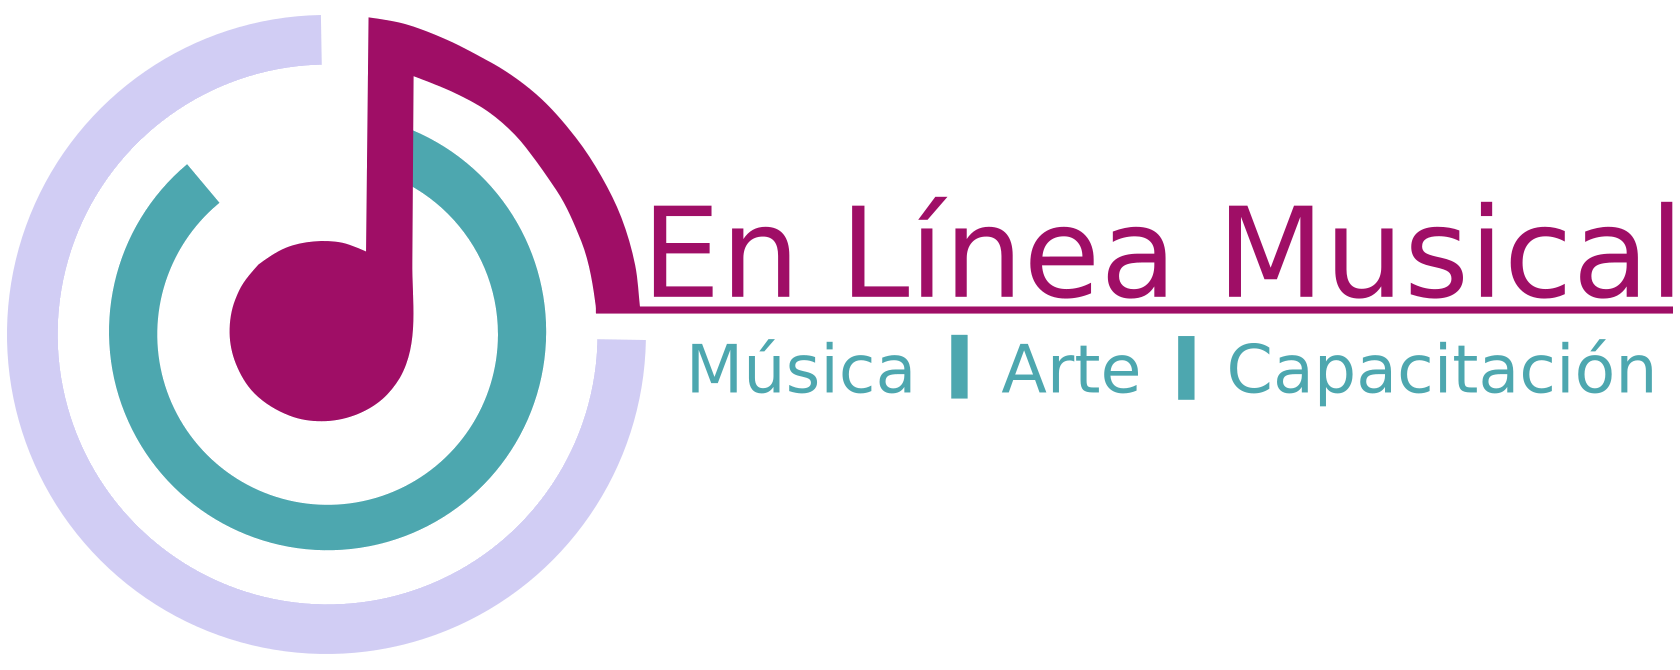 logo_enlinea_original_N